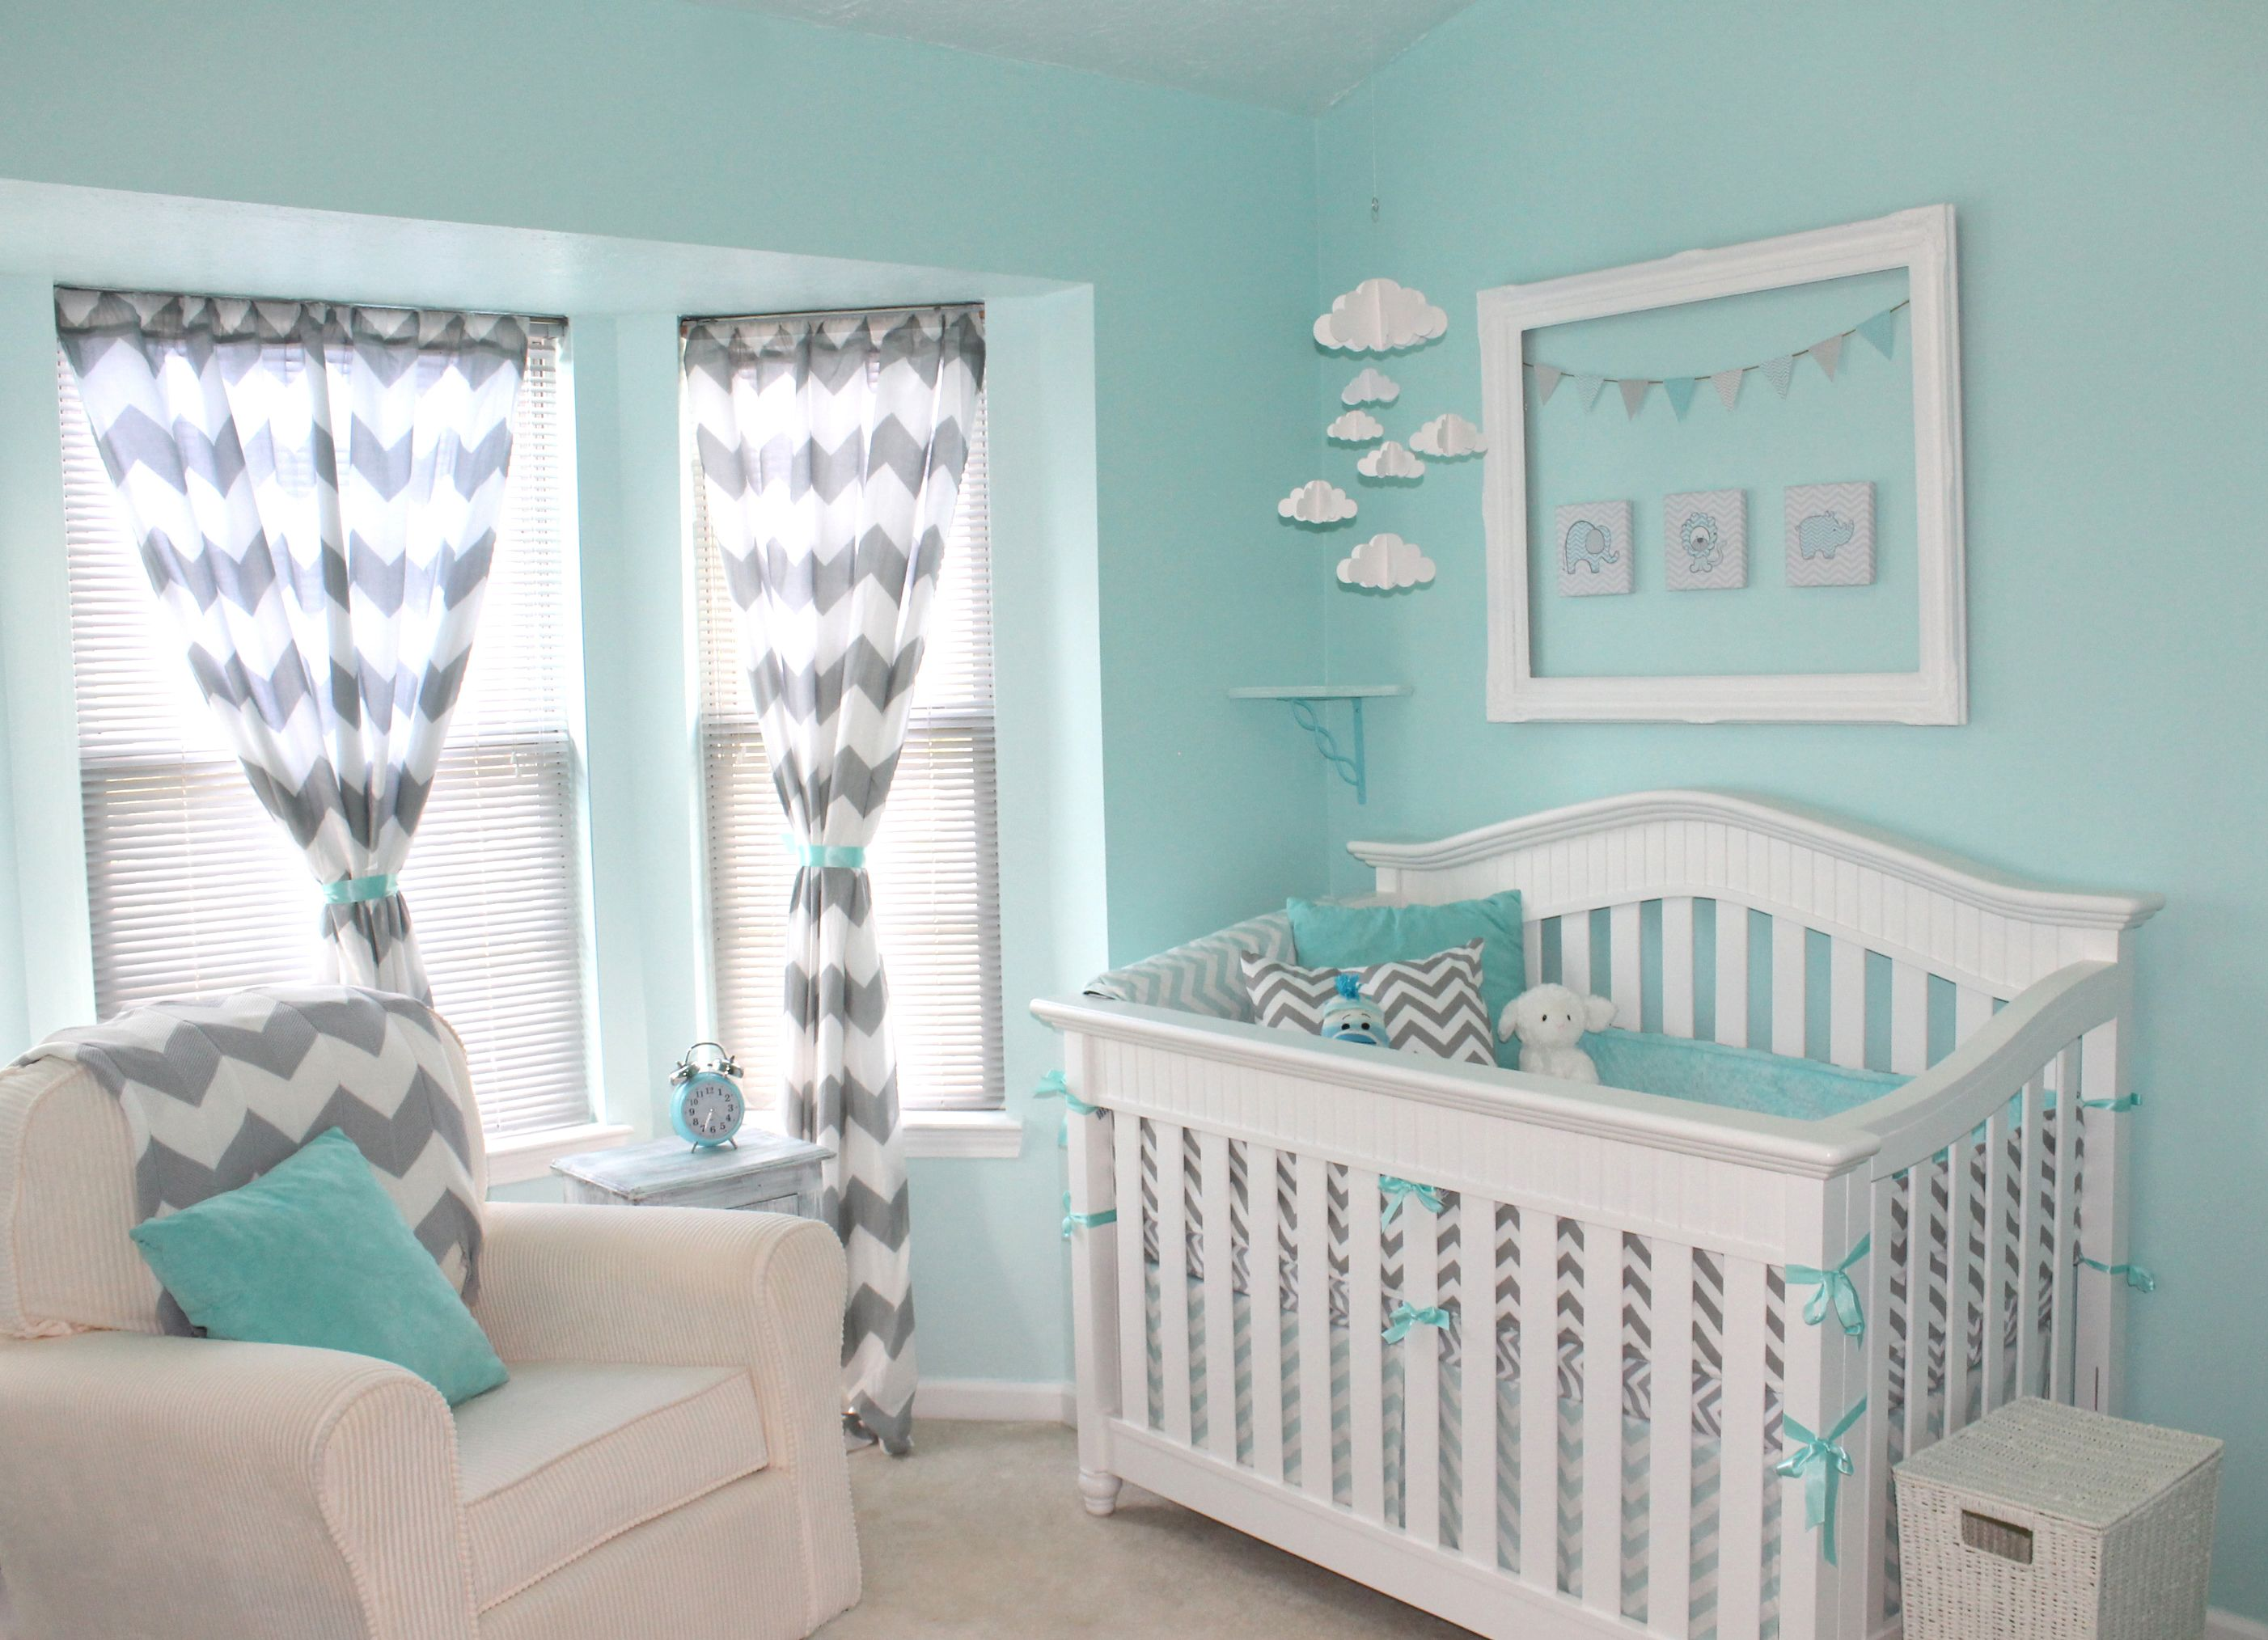 Aqua and Gray Chevron Nursery | Pinterest | Gris, Pequeños y Bebe